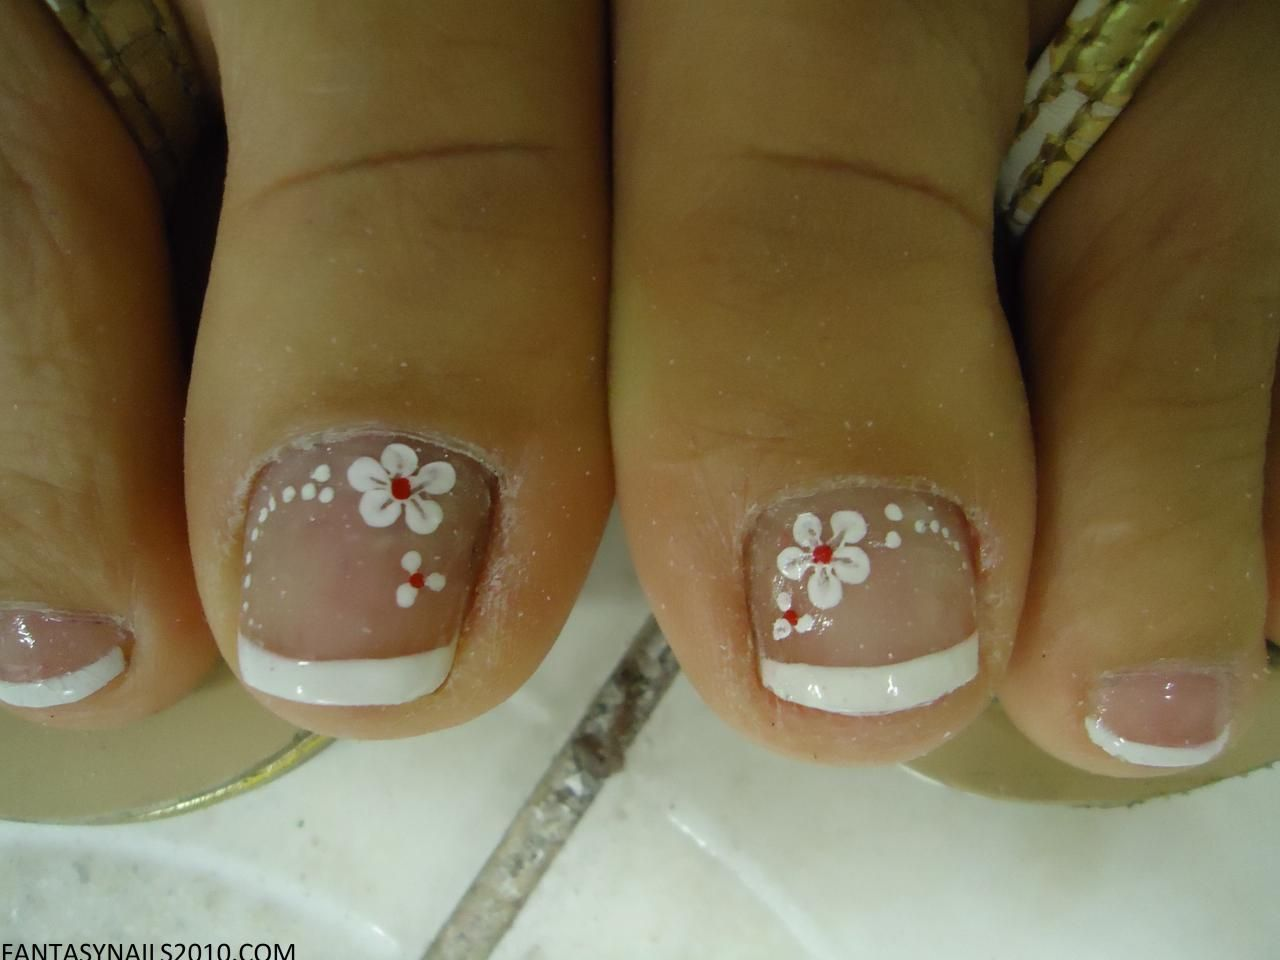 FANTASY NAILS - PEDICURE DESIGN | Toes | Pinterest | Pedicures, Pedi ...